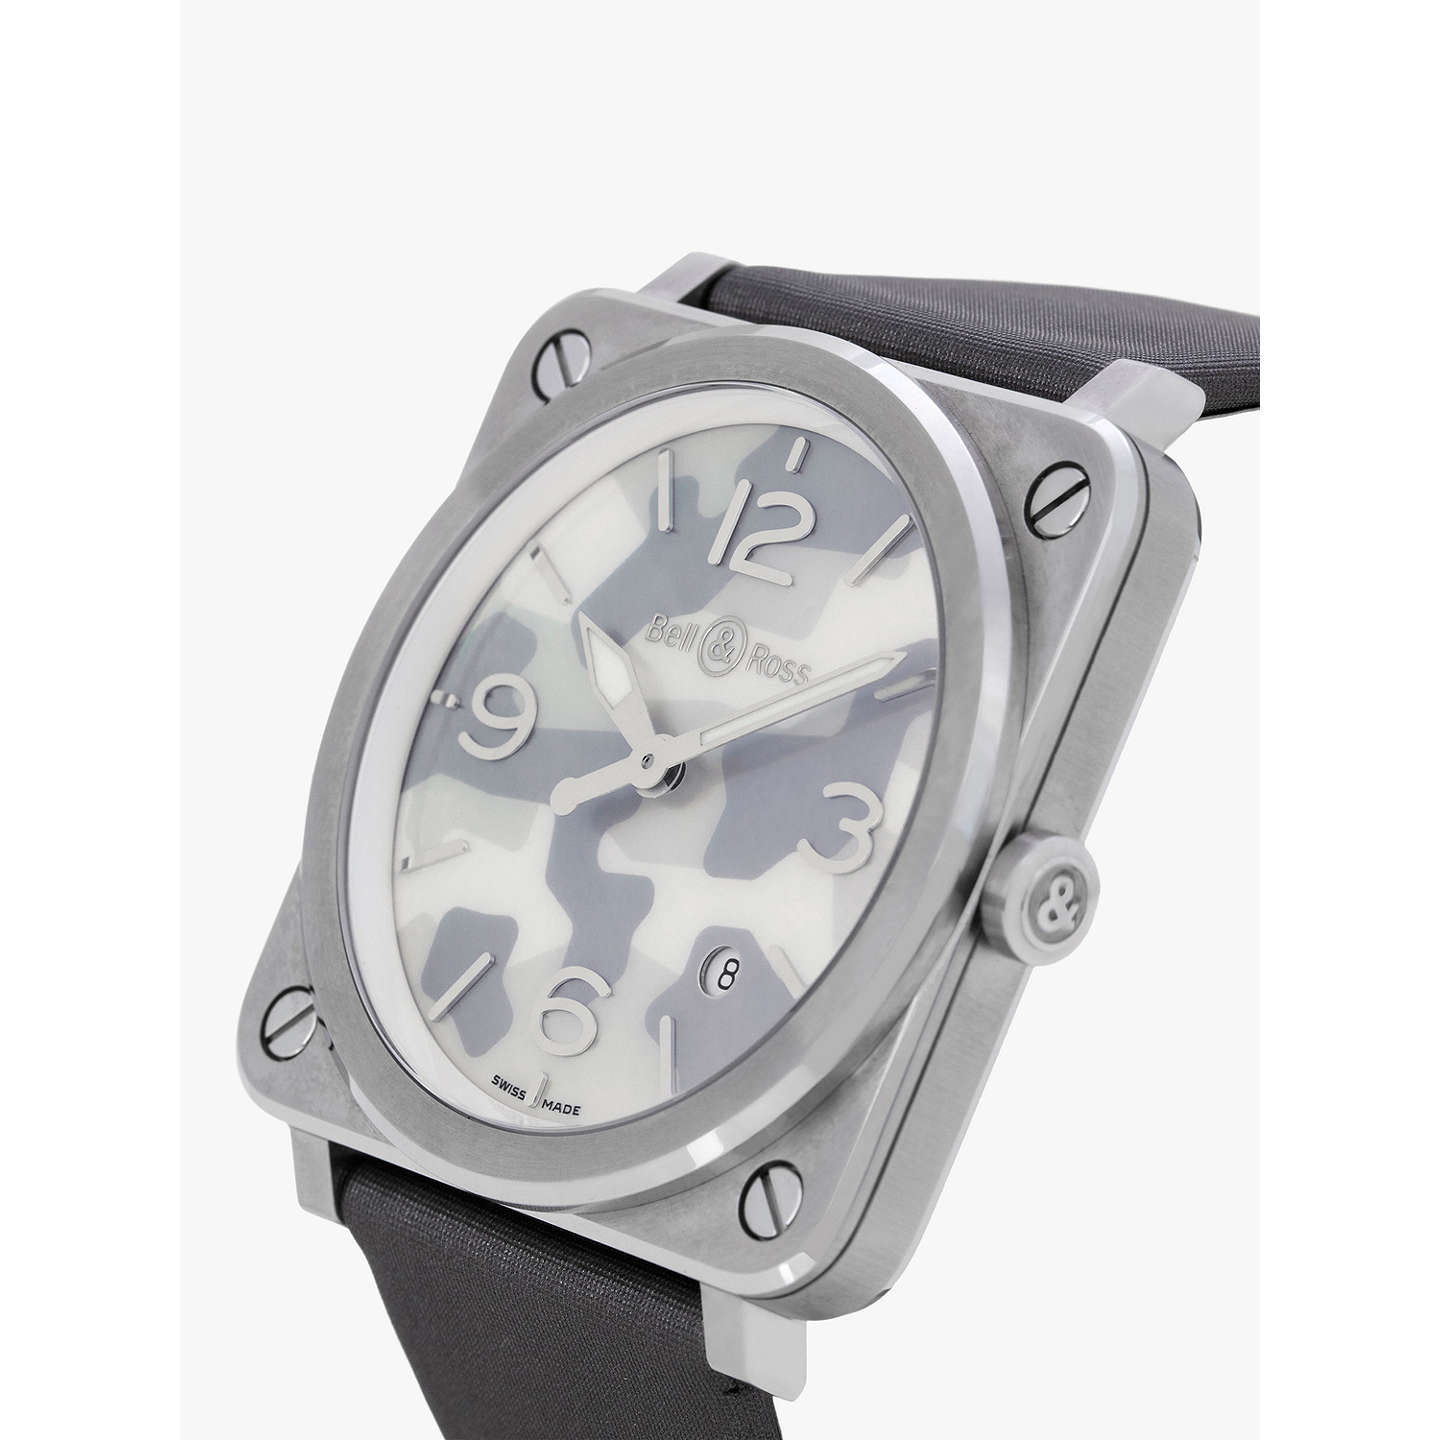 Bell & Ross BRS CAMO ST Uni Date Satin Strap Watch Grey